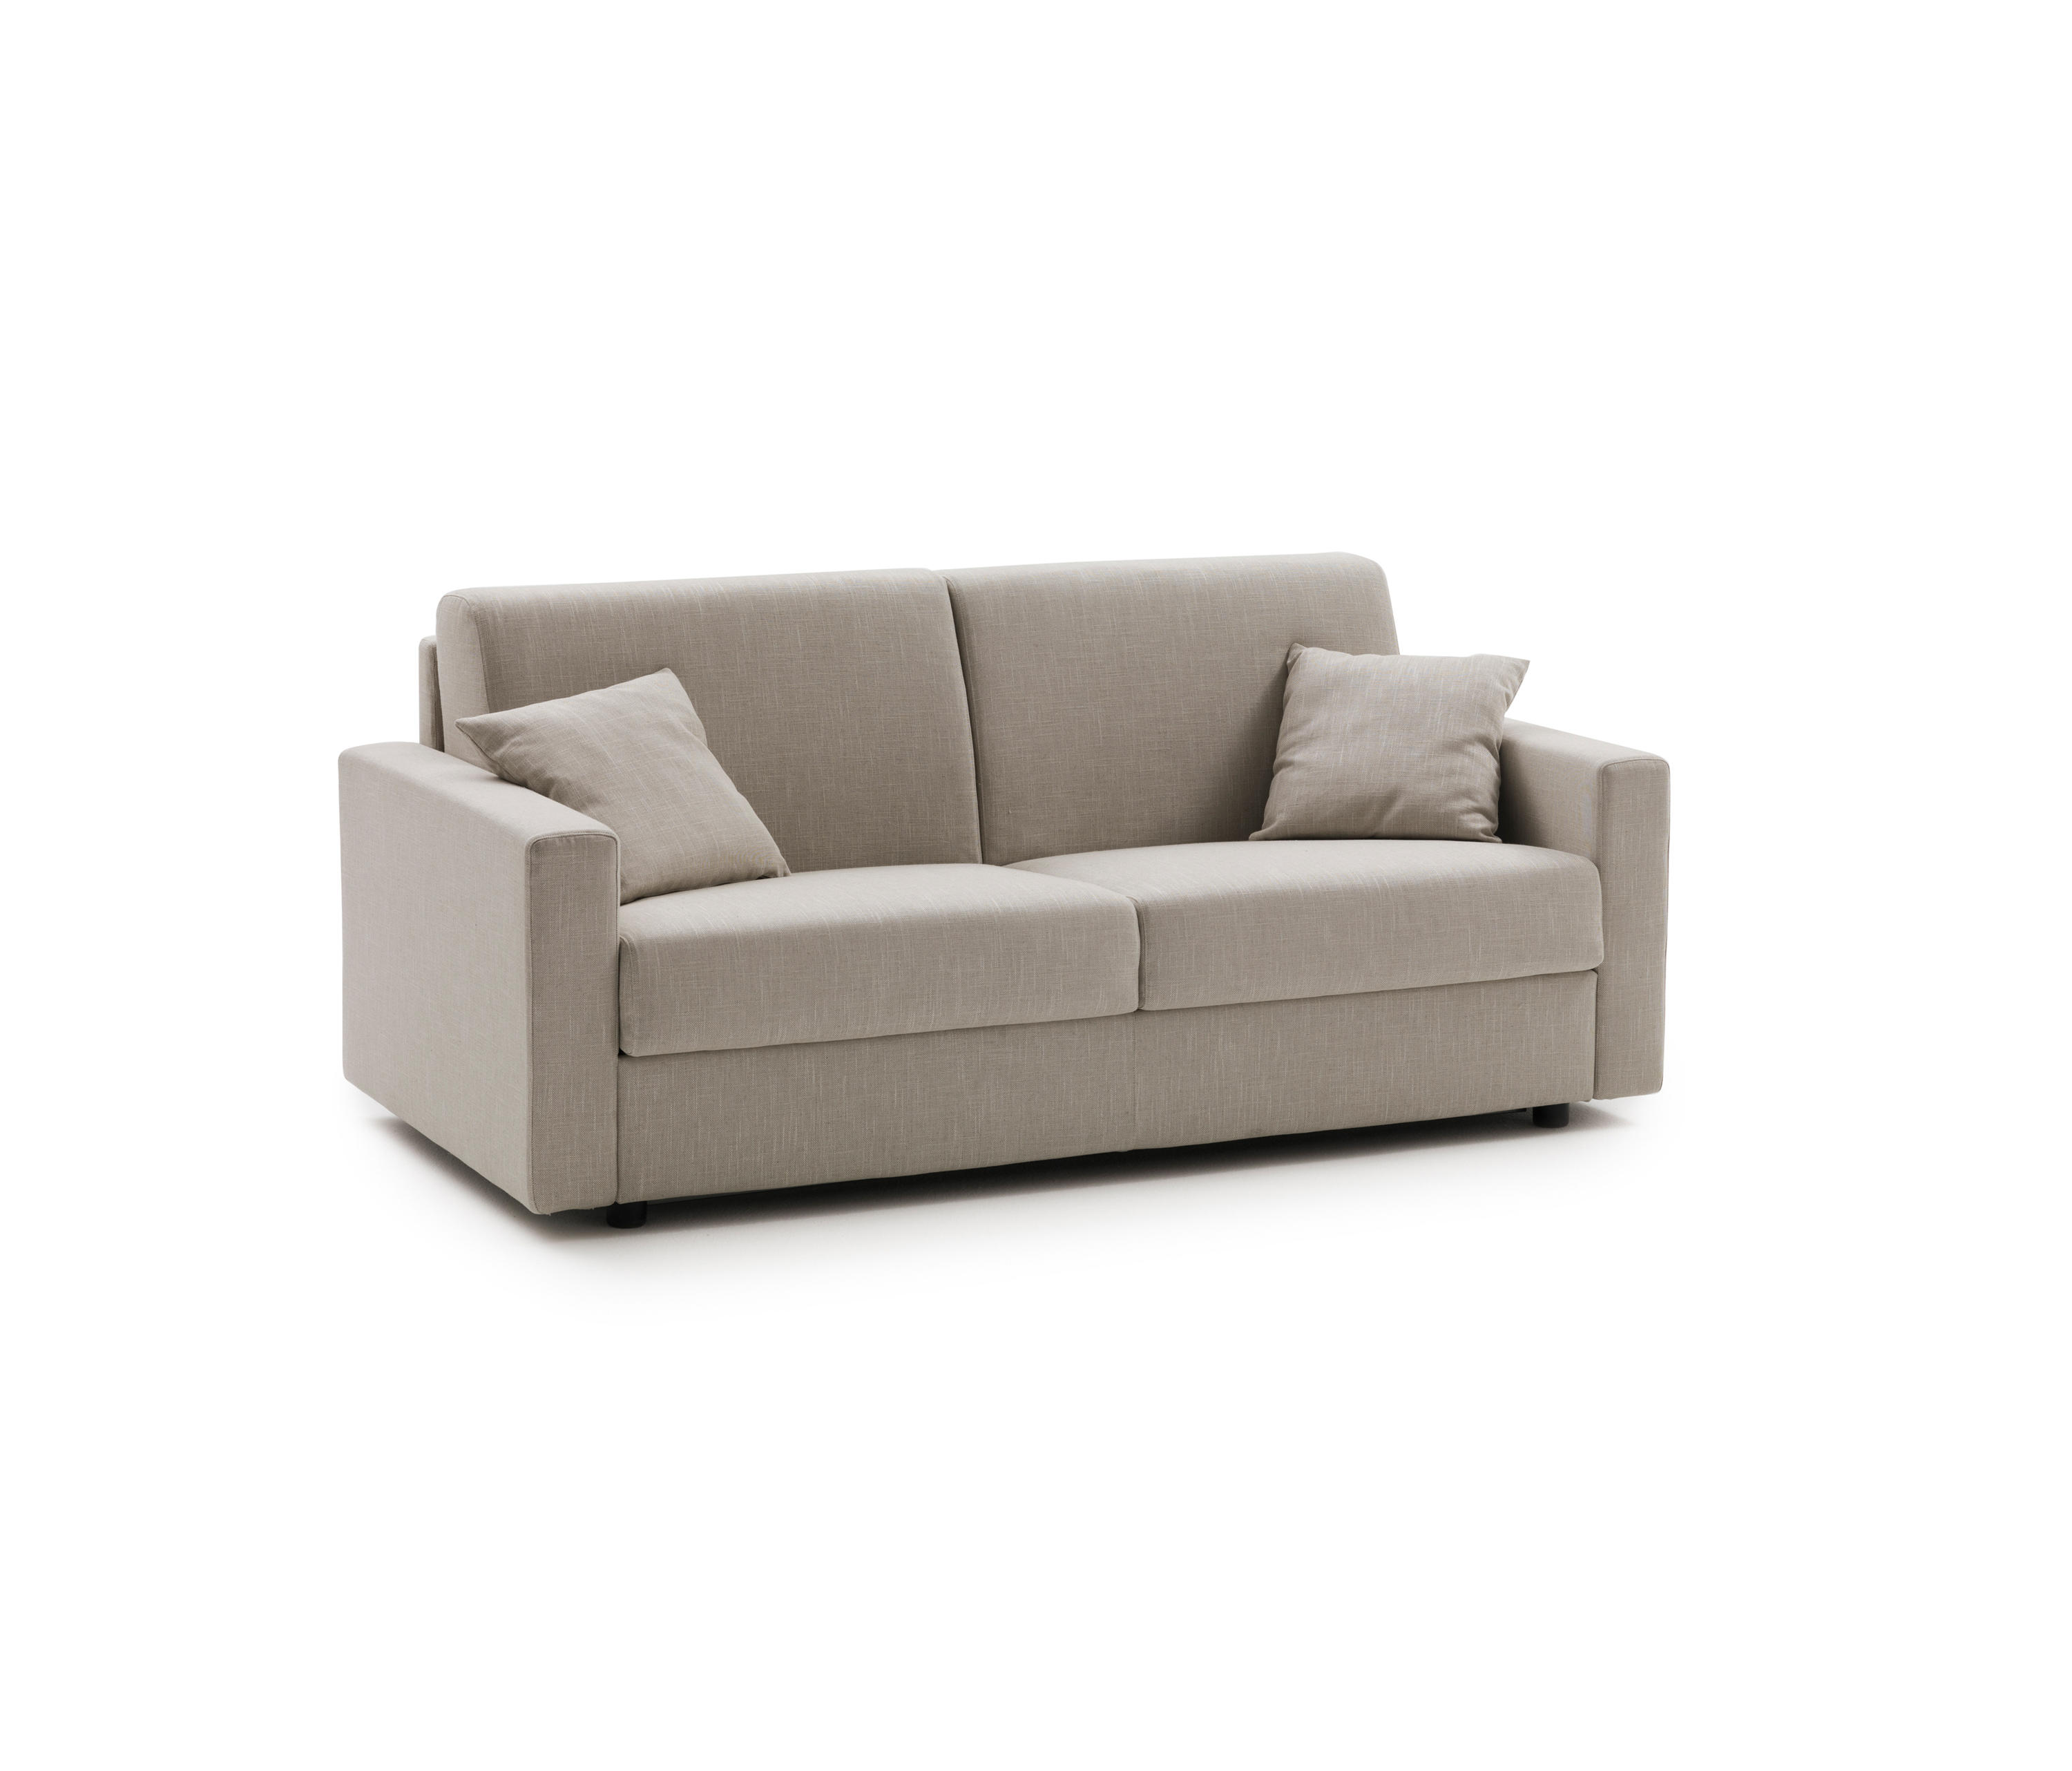 Lampo Motion By Milano Bedding Sofa Beds